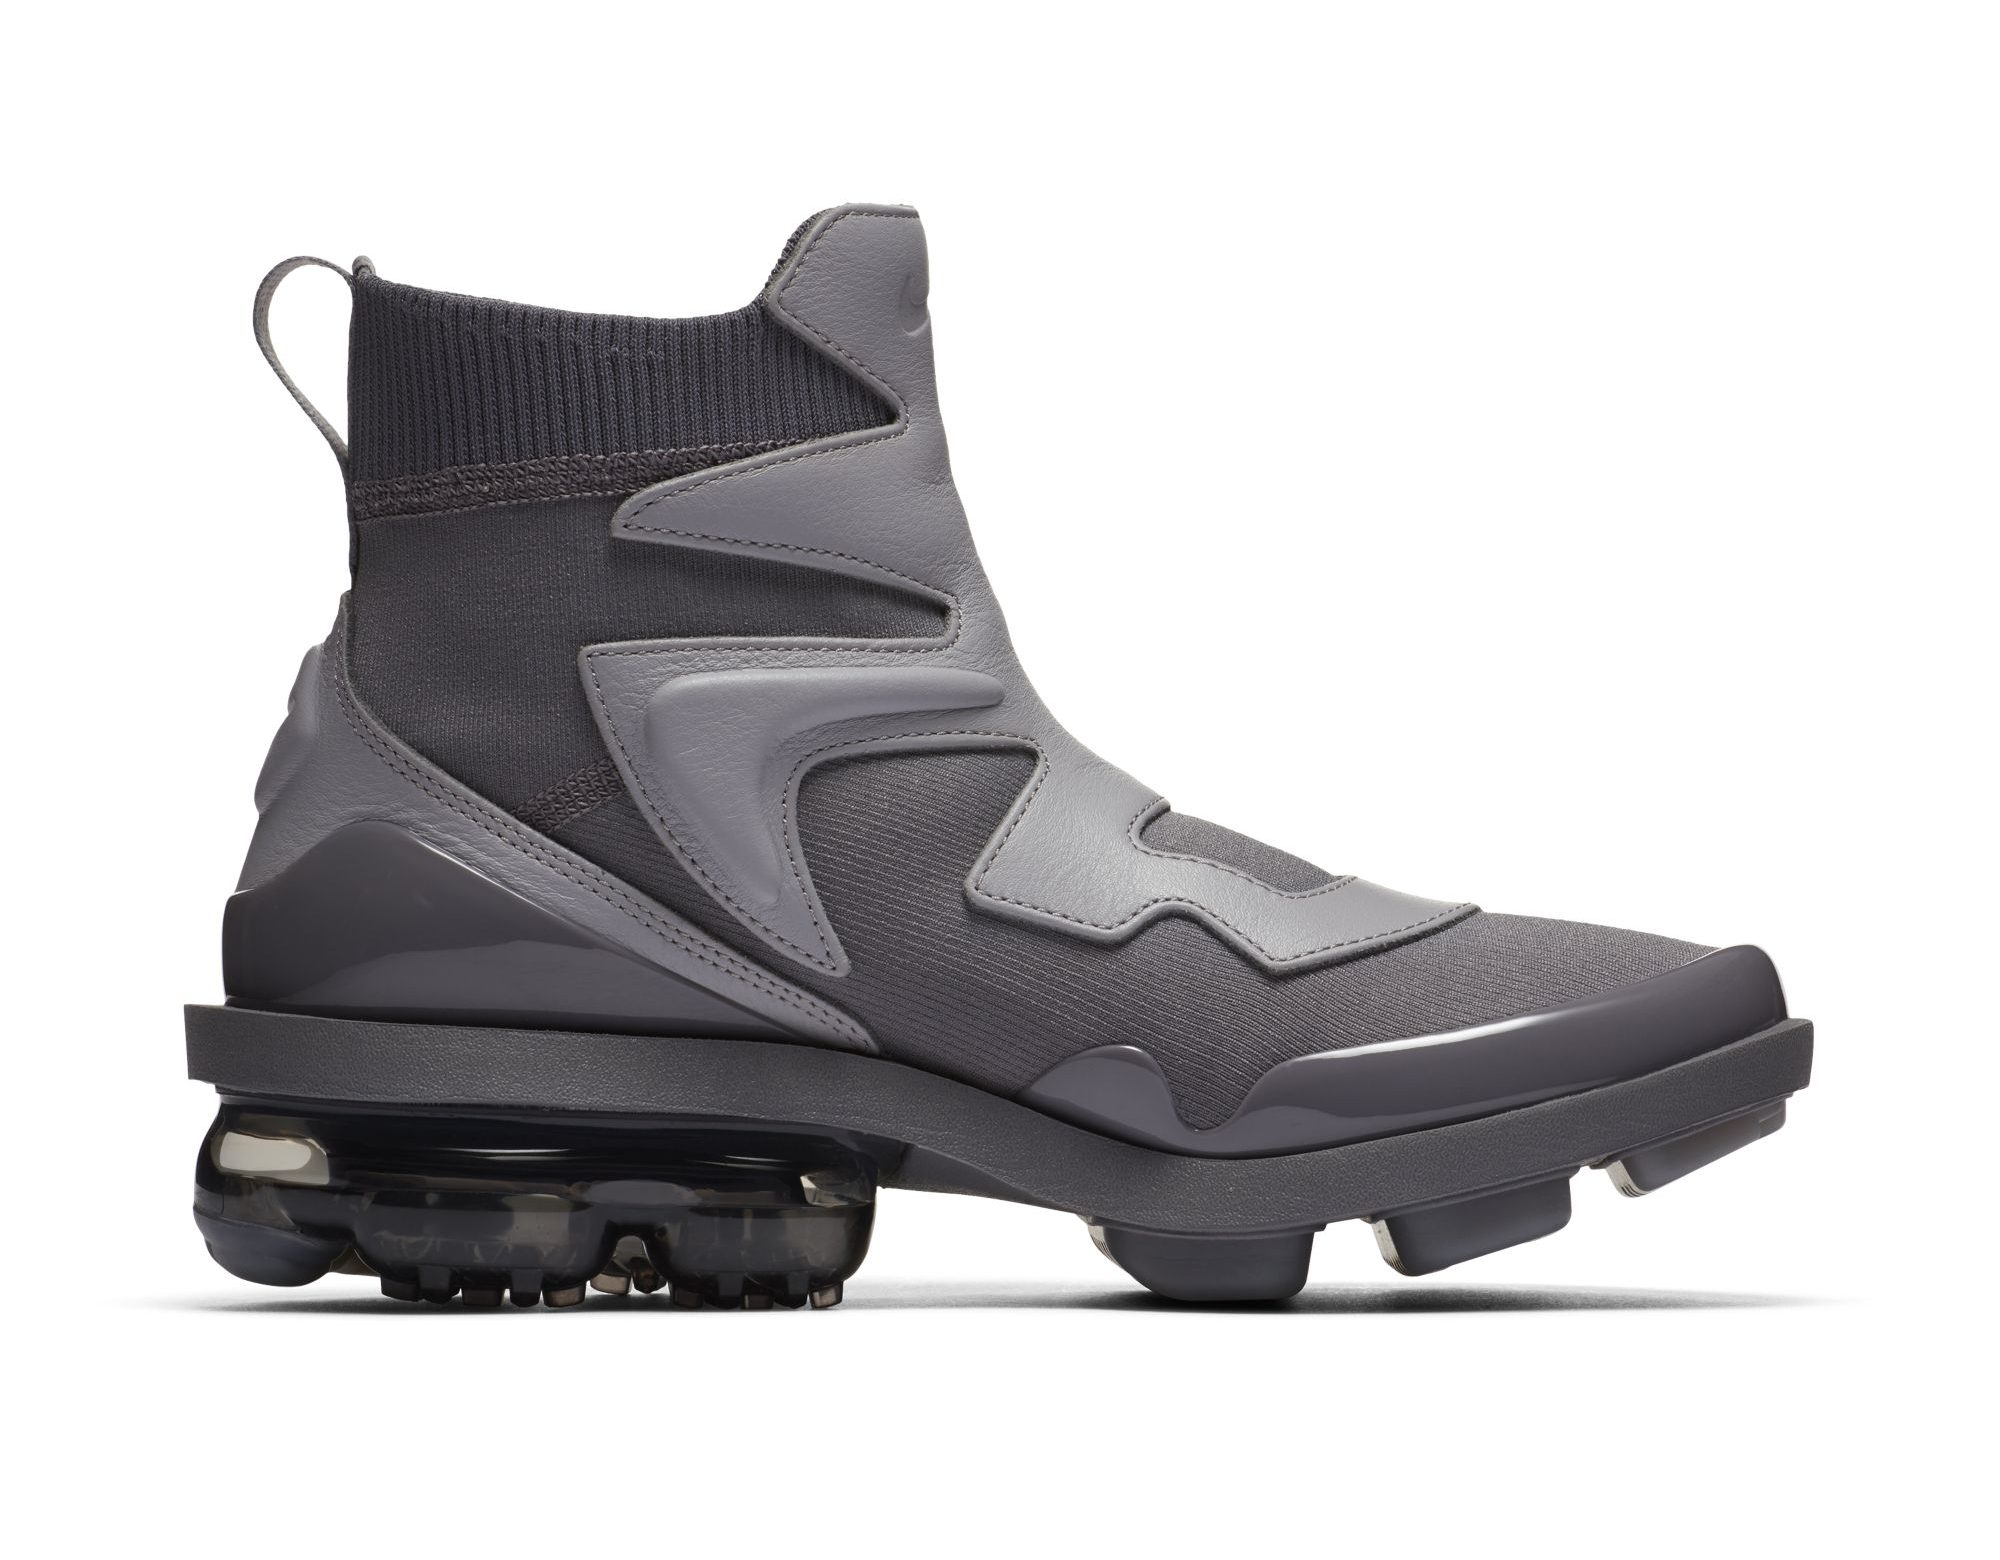 nike vapormax light boot 1